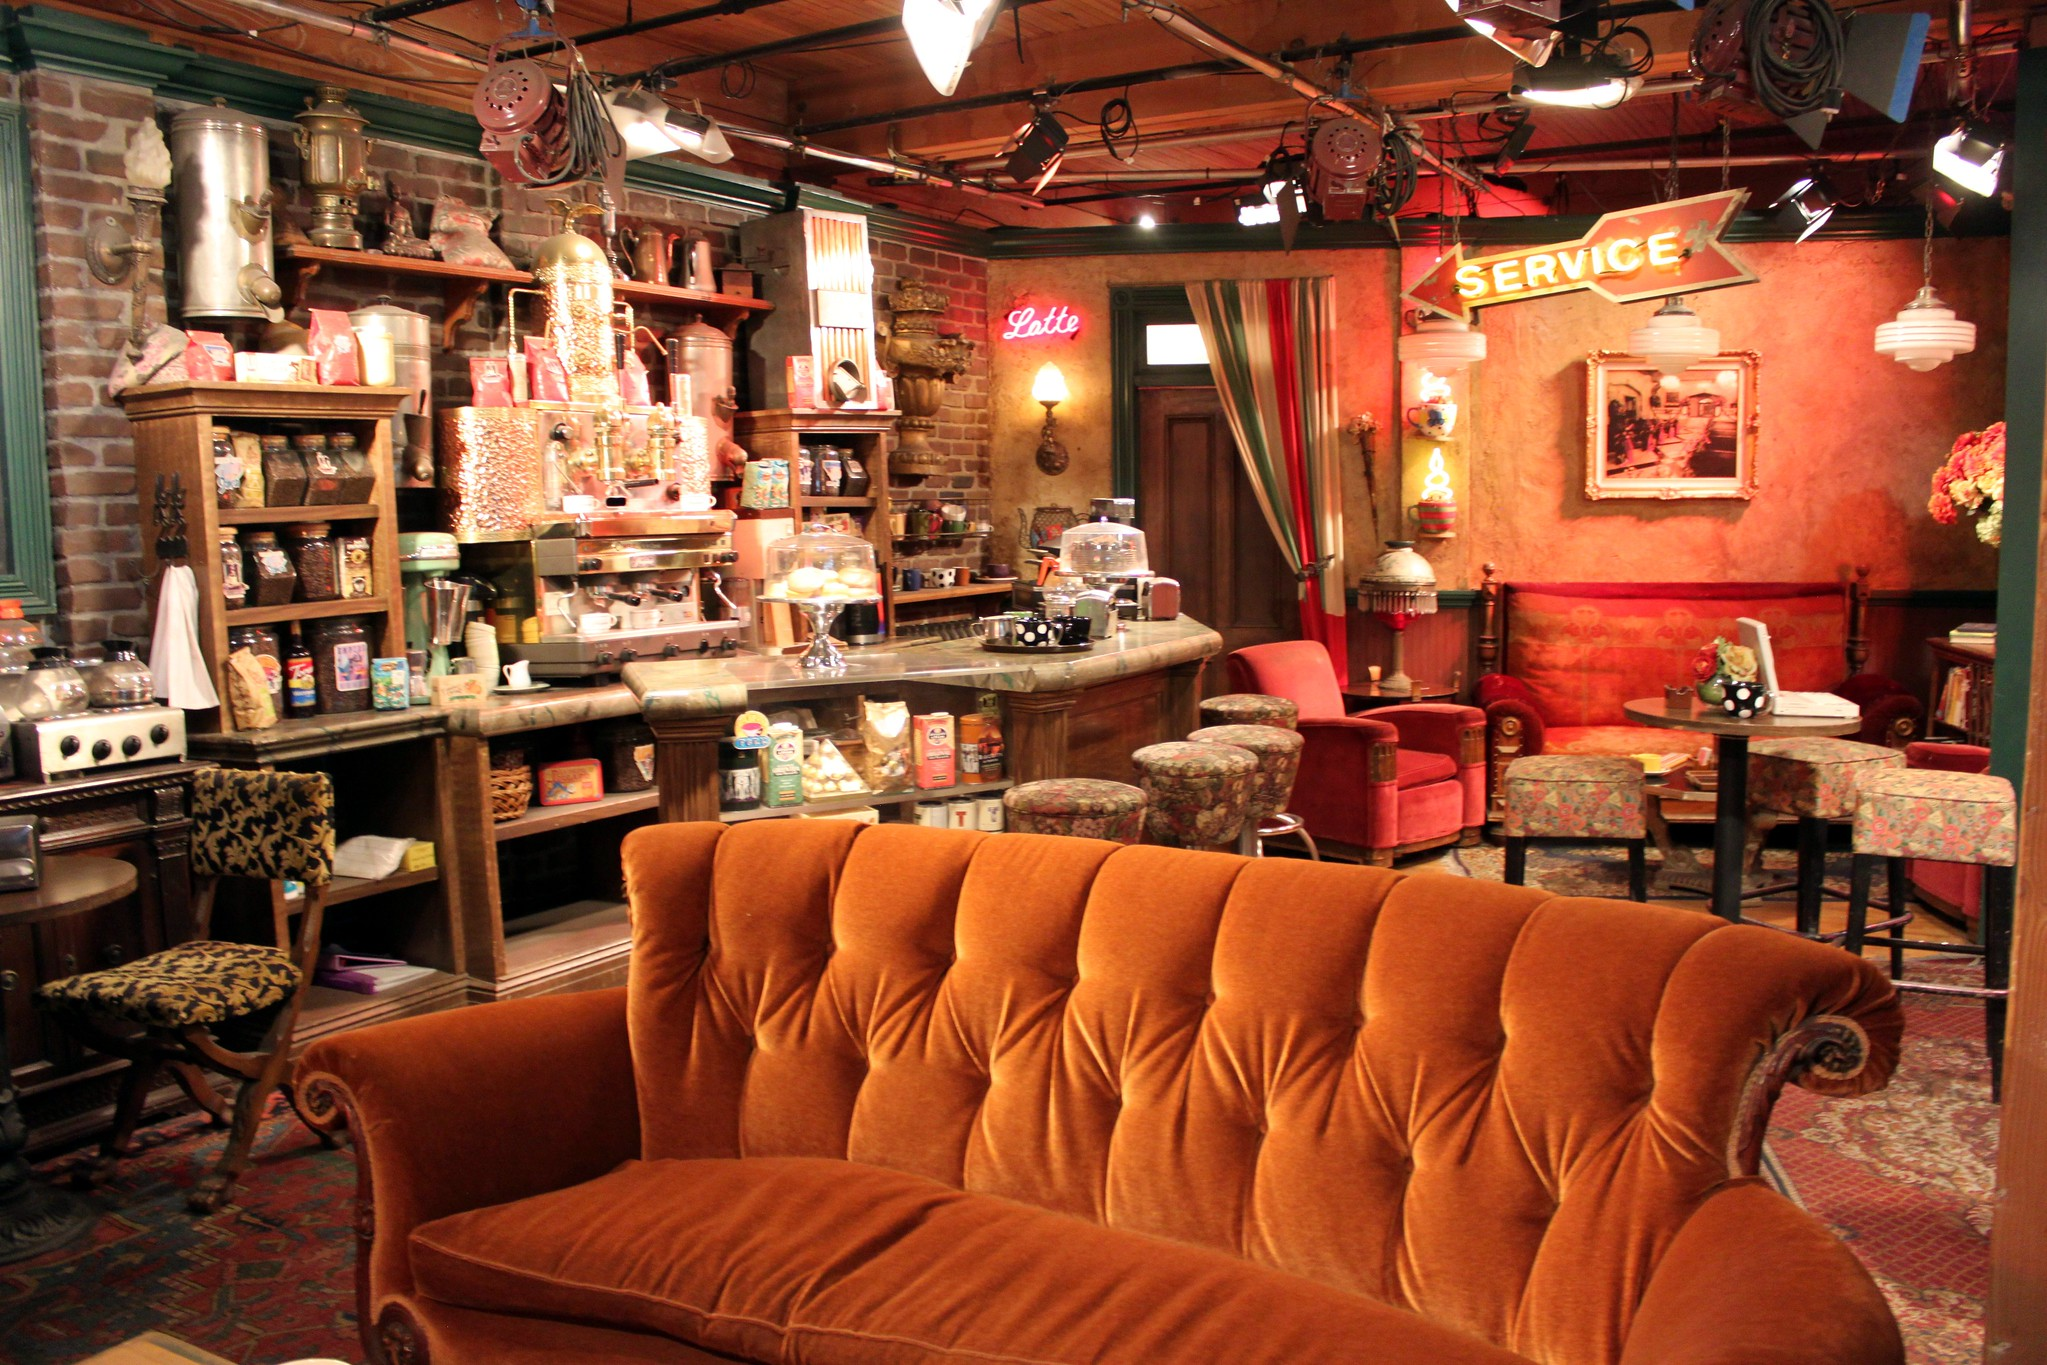 A photo of the famous sofa inside Central Perk coffee shop from the 'Friends' sitcom